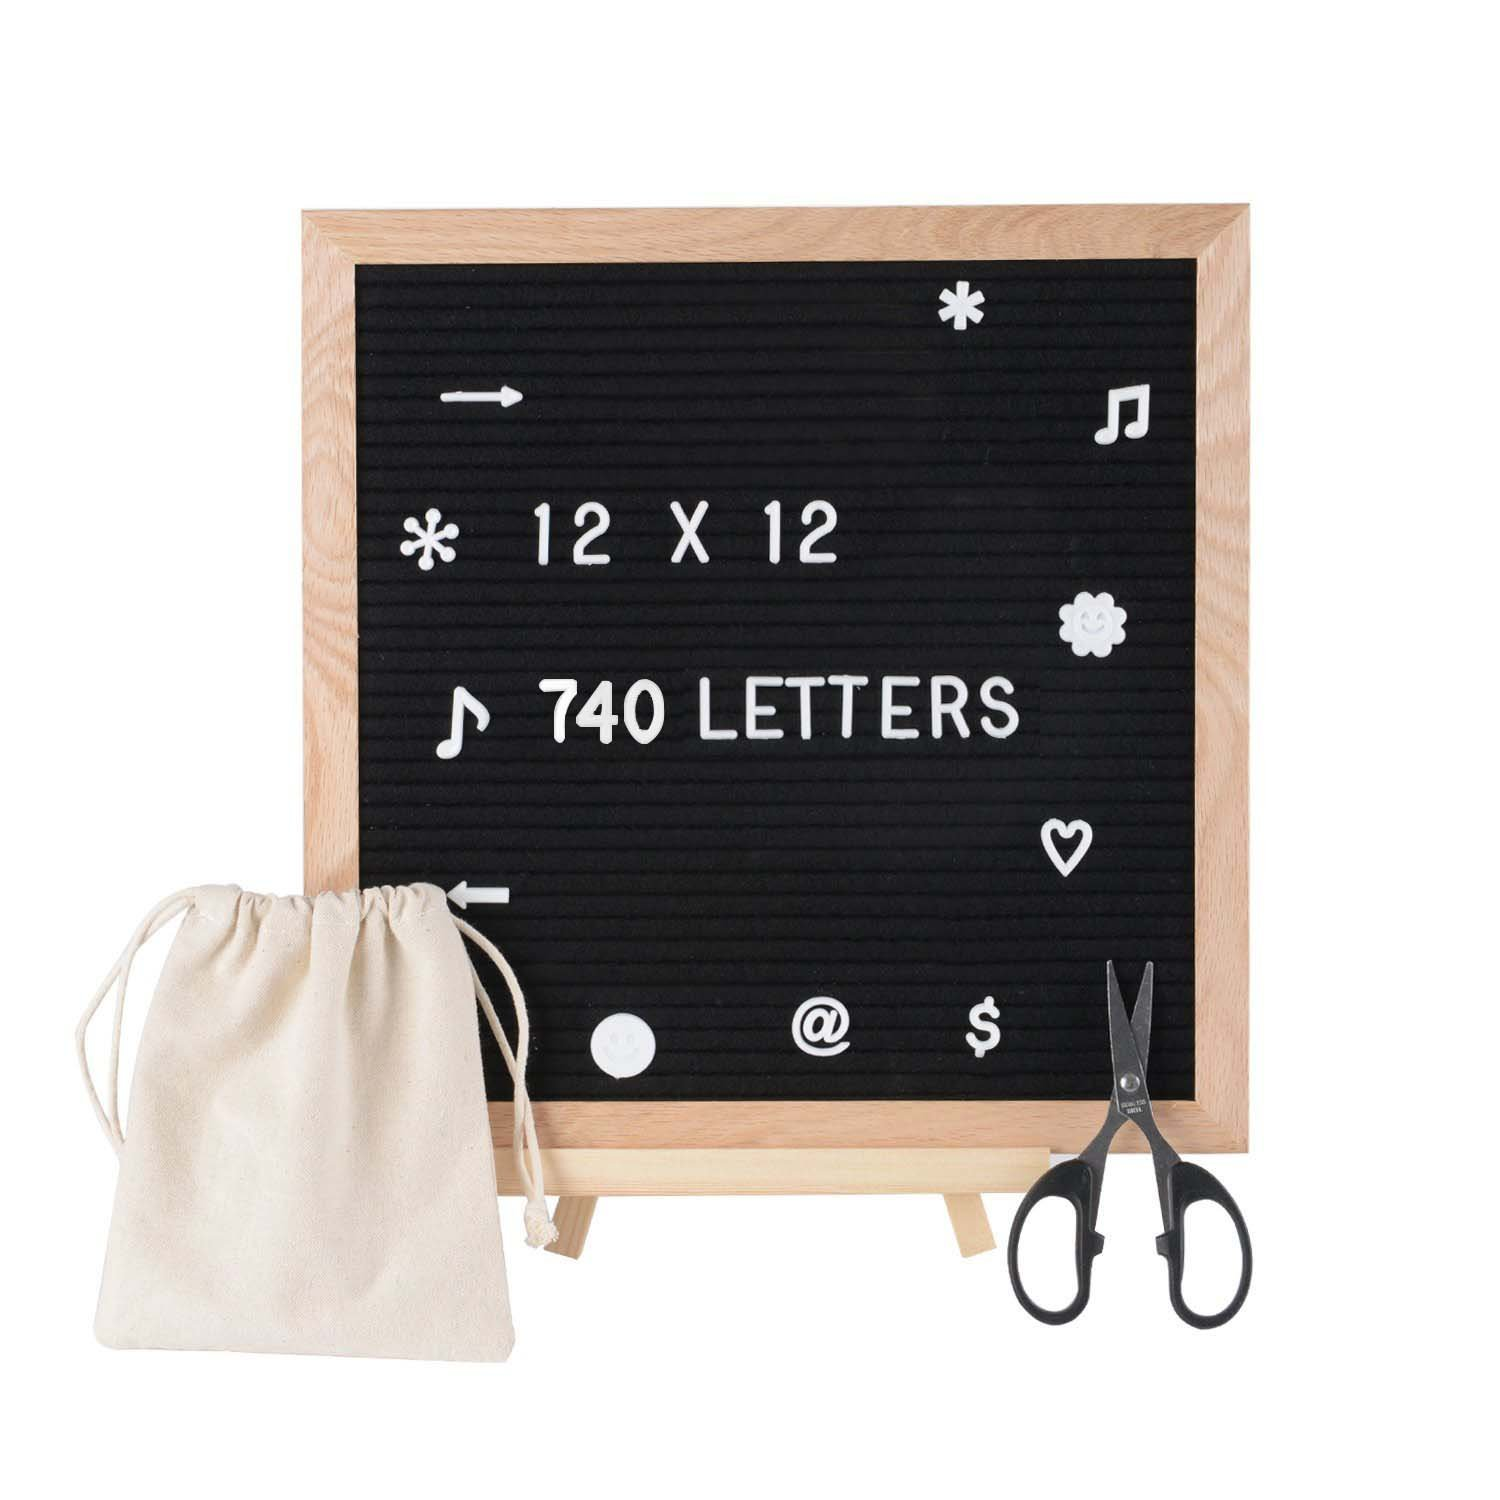 SPACECARE Black Felt Letter Board with 720PCS Letters, Numbers & Symbols, 12x12 inches Wall Mount Changeable Message Board Sign, Word Board,Letterboard